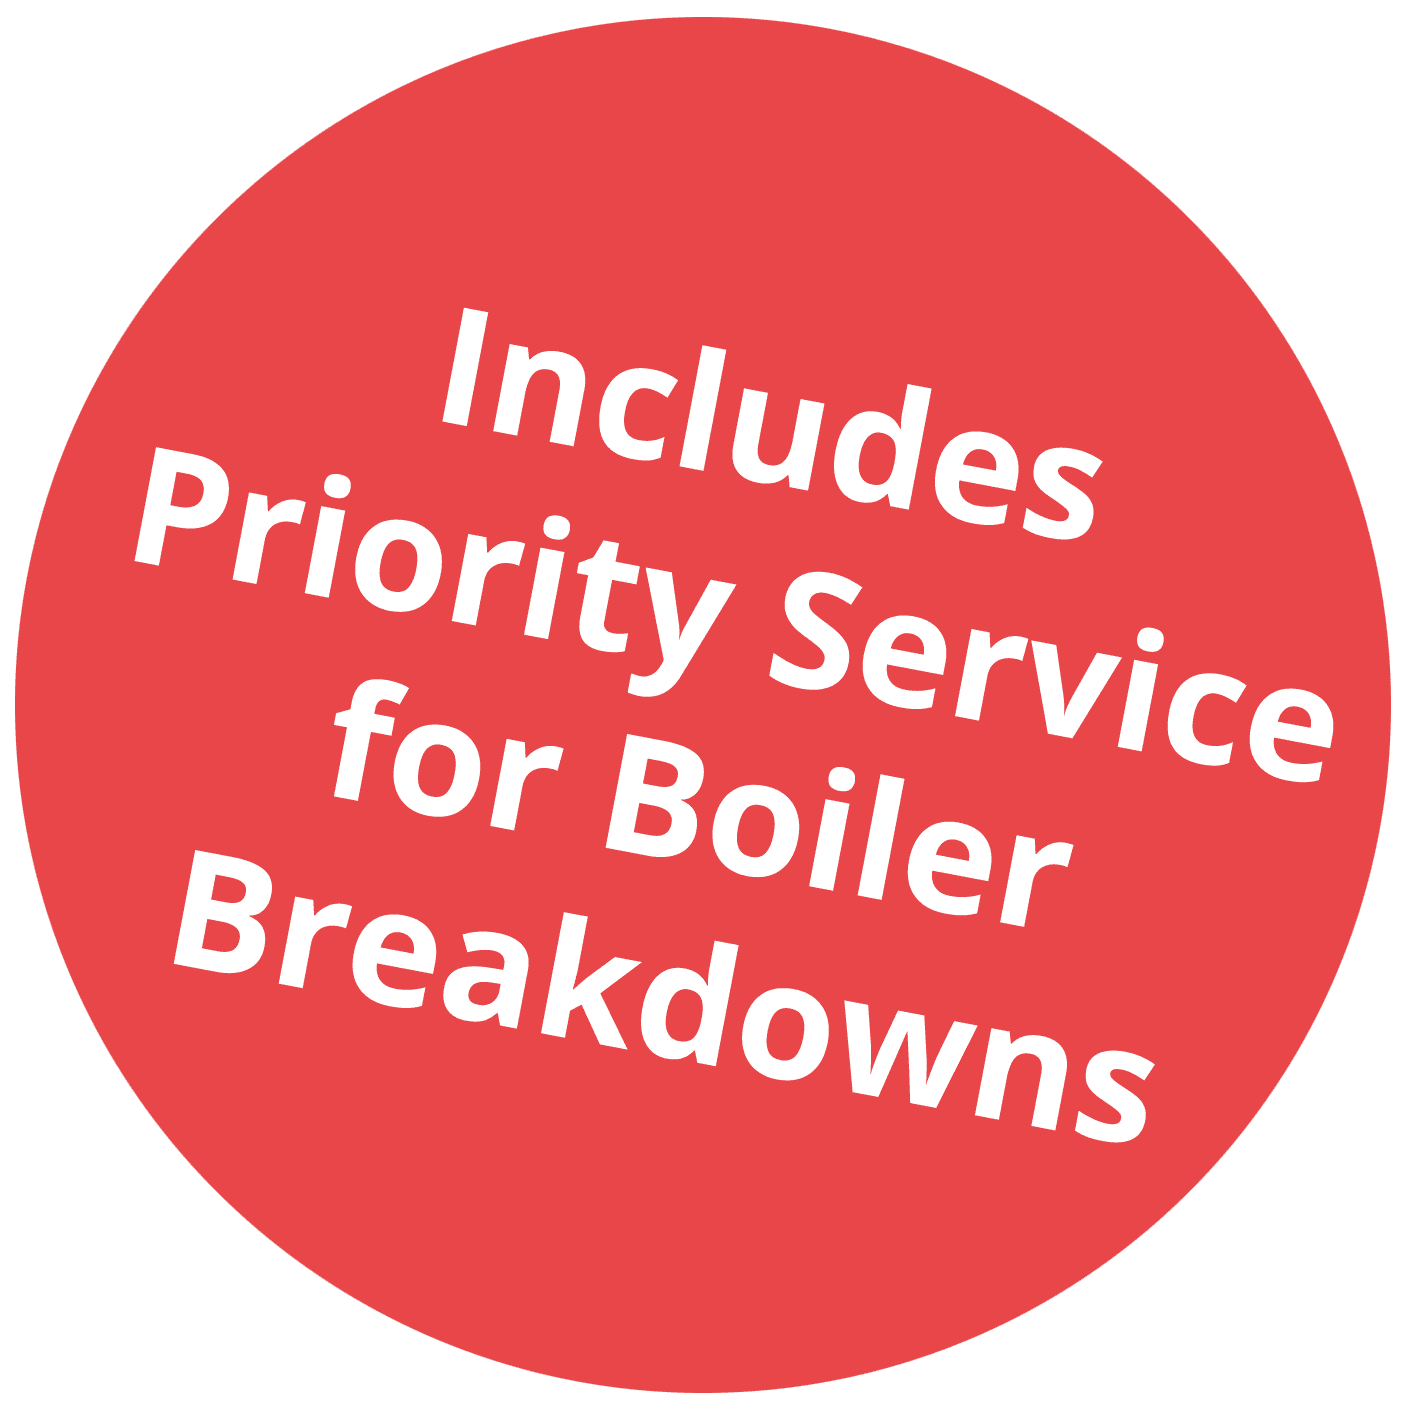 Priority service for boiler breakdowns